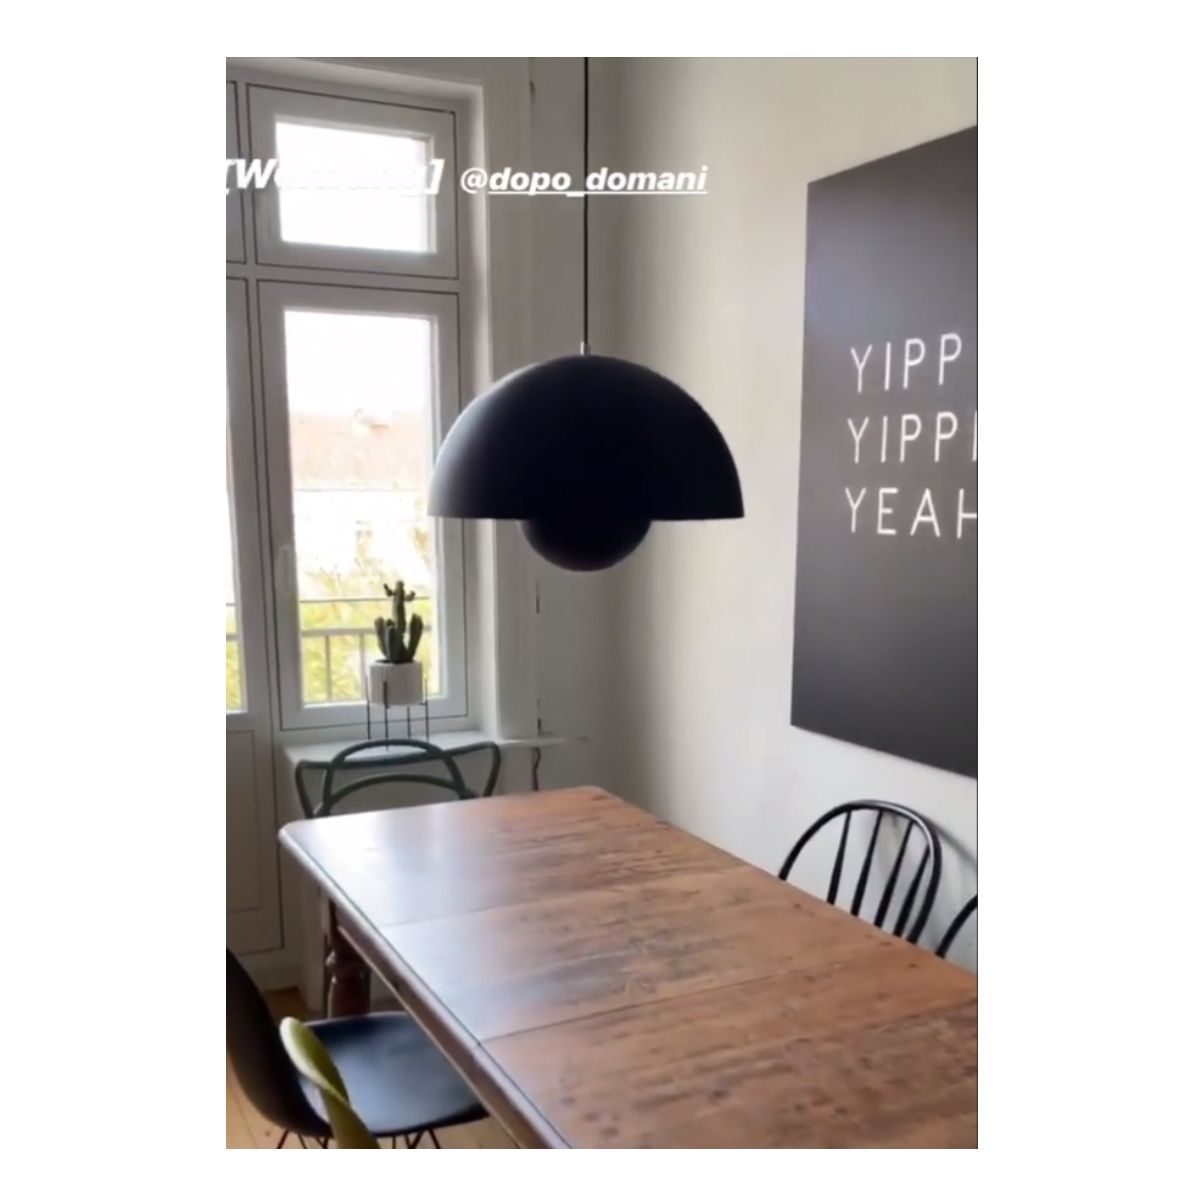 Dopo Domani Is Featured On Interior Design Blog And Instagraam Profile Elbgestoeber With The And Tradition Flowerpot Shop Now On Ww Dopo Inredning Lampor